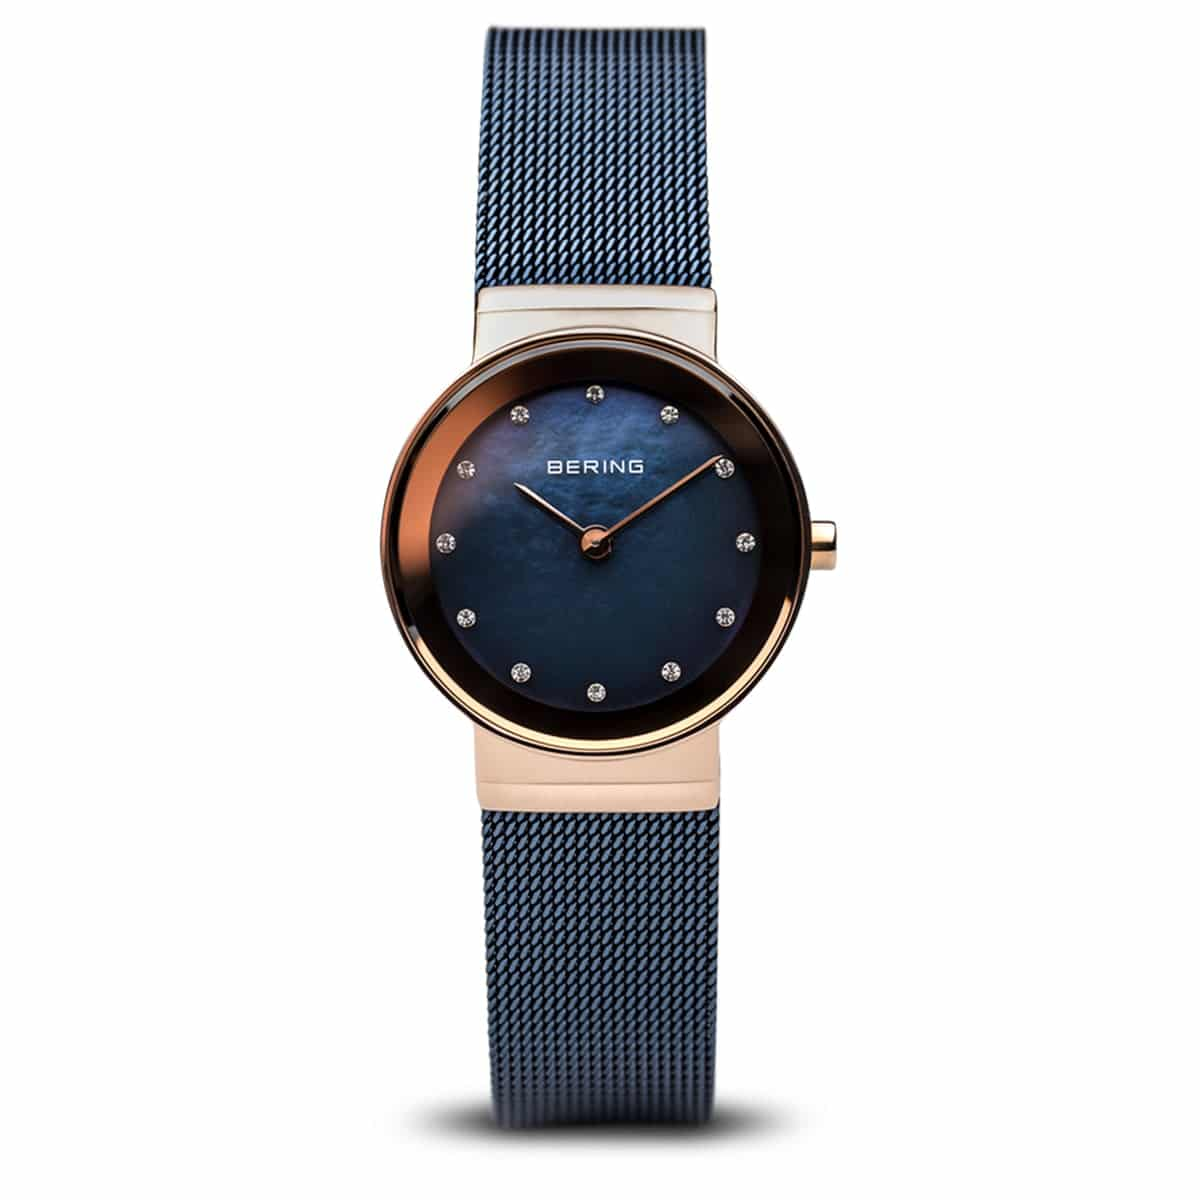 BERING LADIES CLASSIC ROSE GOLD BLUE DIAL WATCH 10126-367